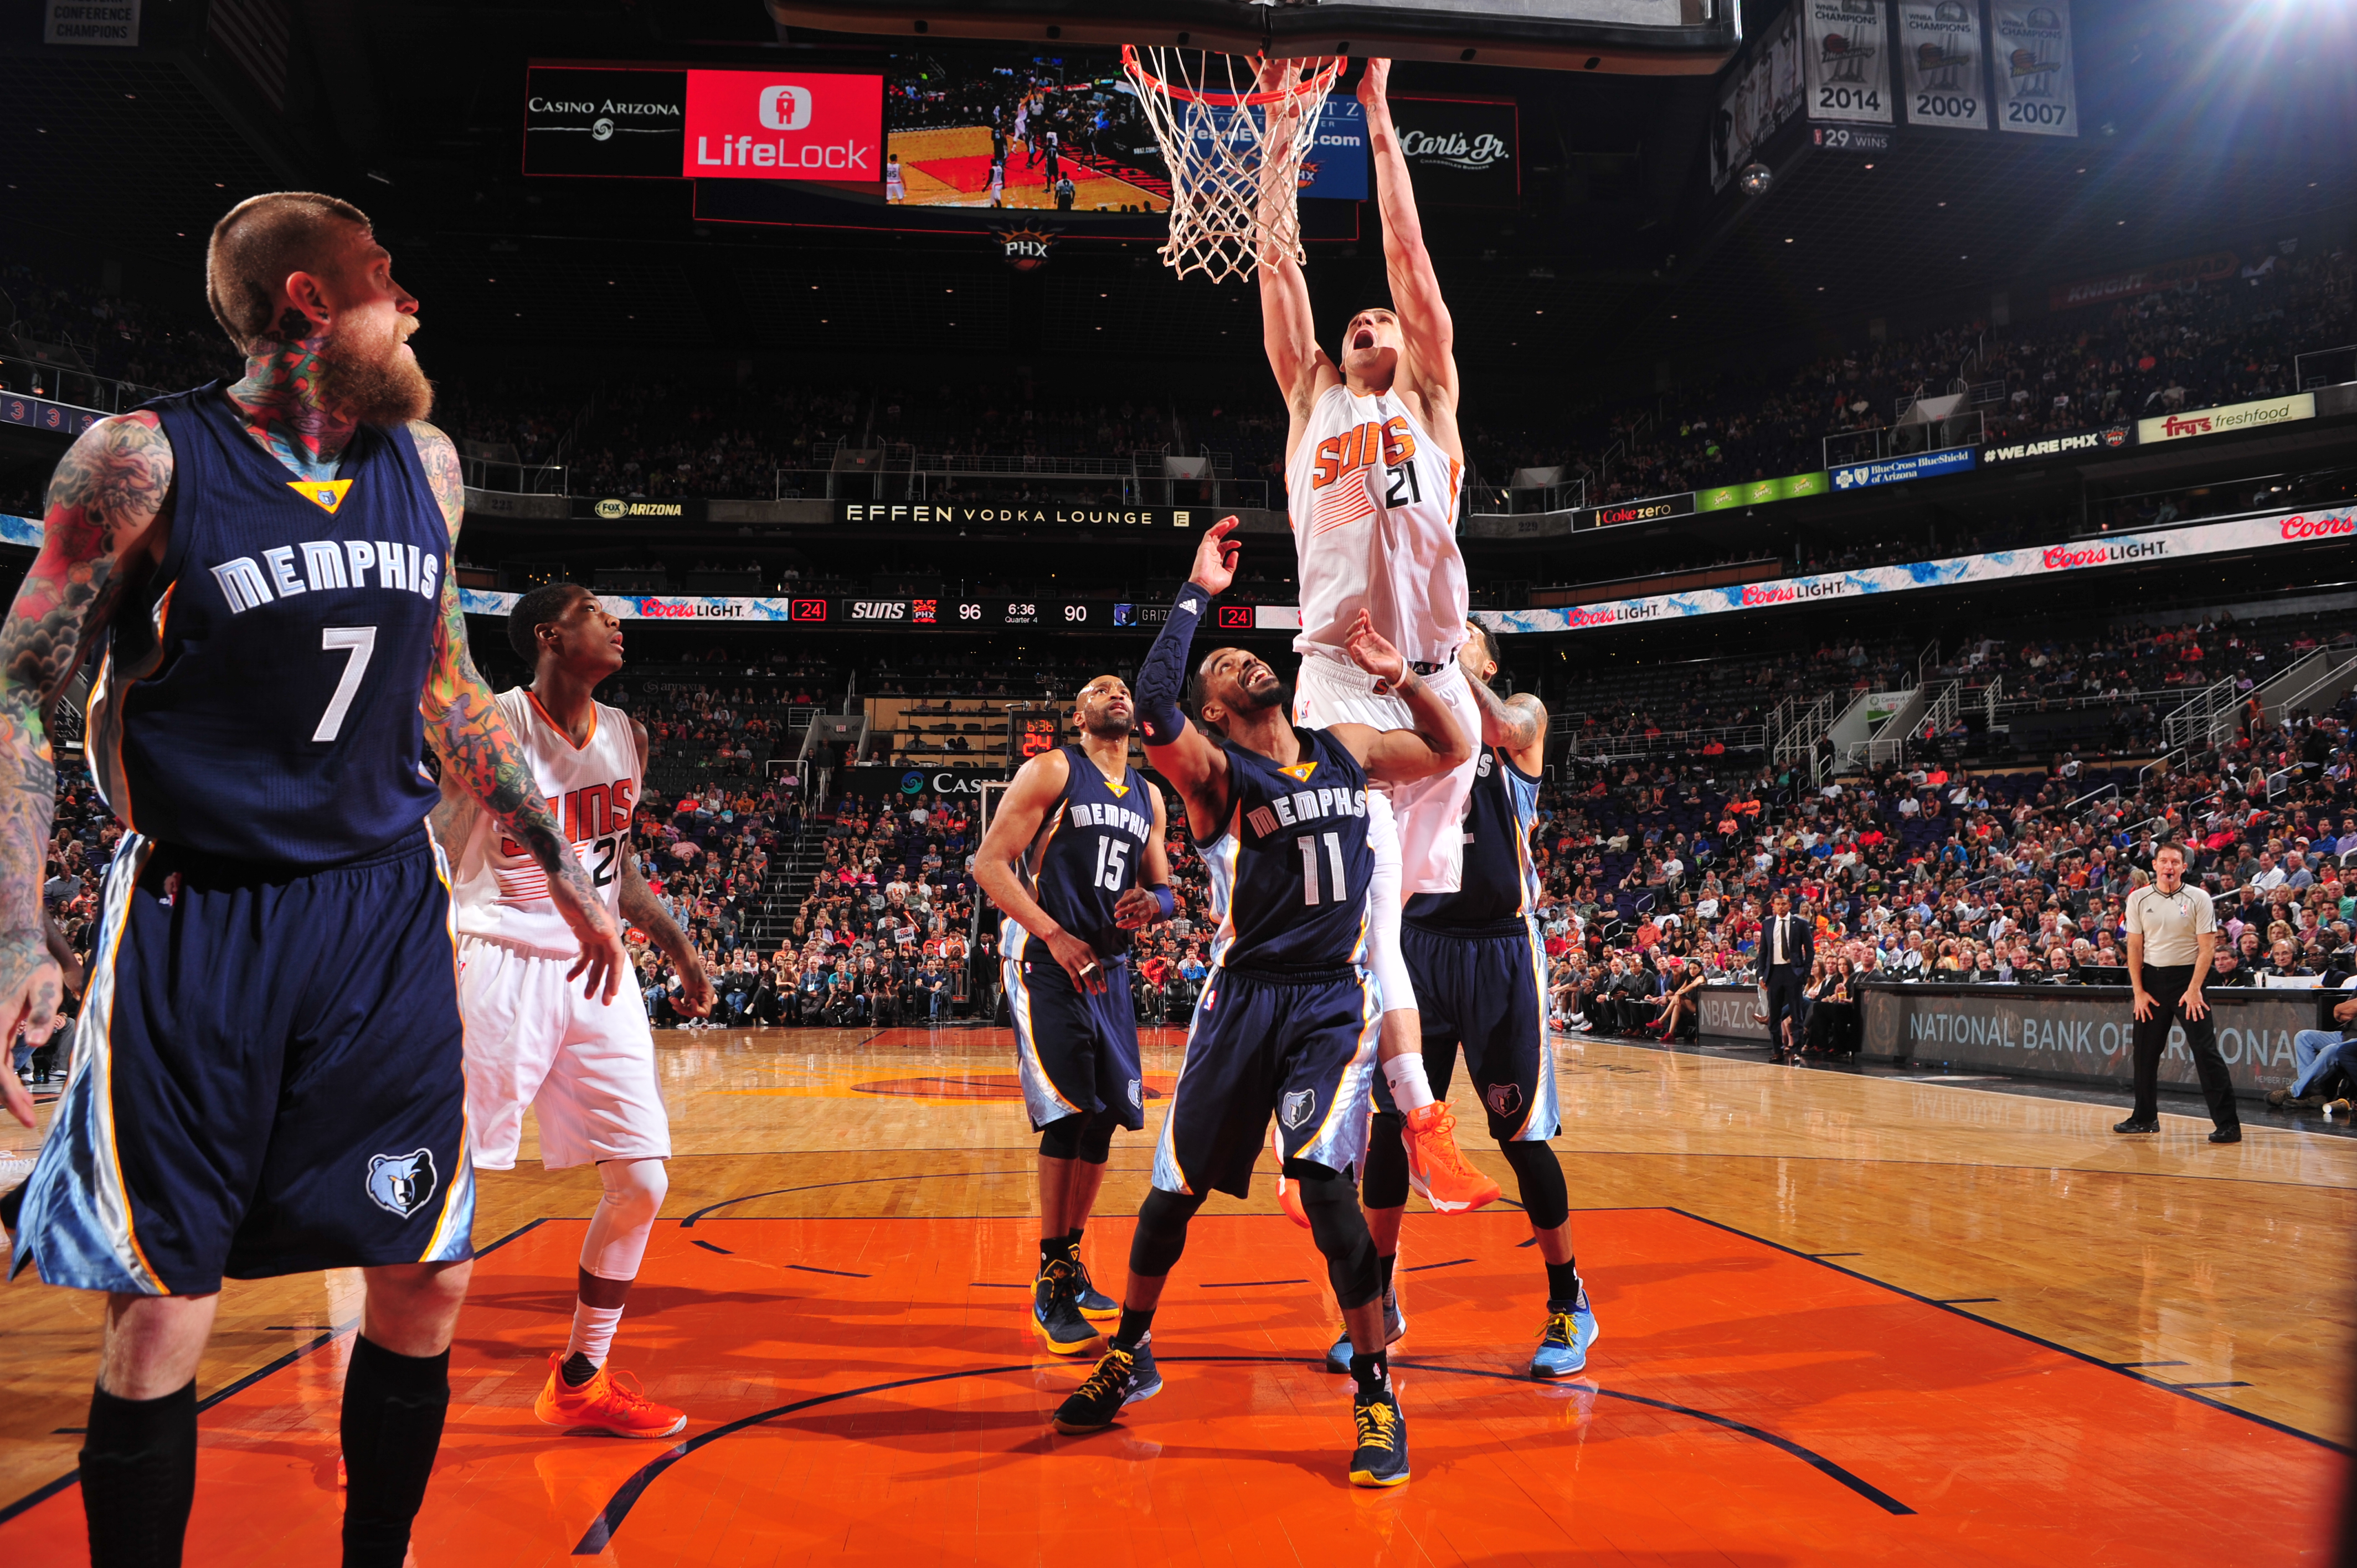 PHOENIX, AZ - FEBRUARY 27:  Alex Len #21 of the Phoenix Suns goes to the basket against the Memphis Grizzlies on February 27, 2016 at Talking Stick Resort Arena in Phoenix, Arizona. (Photo by Barry Gossage/NBAE via Getty Images)